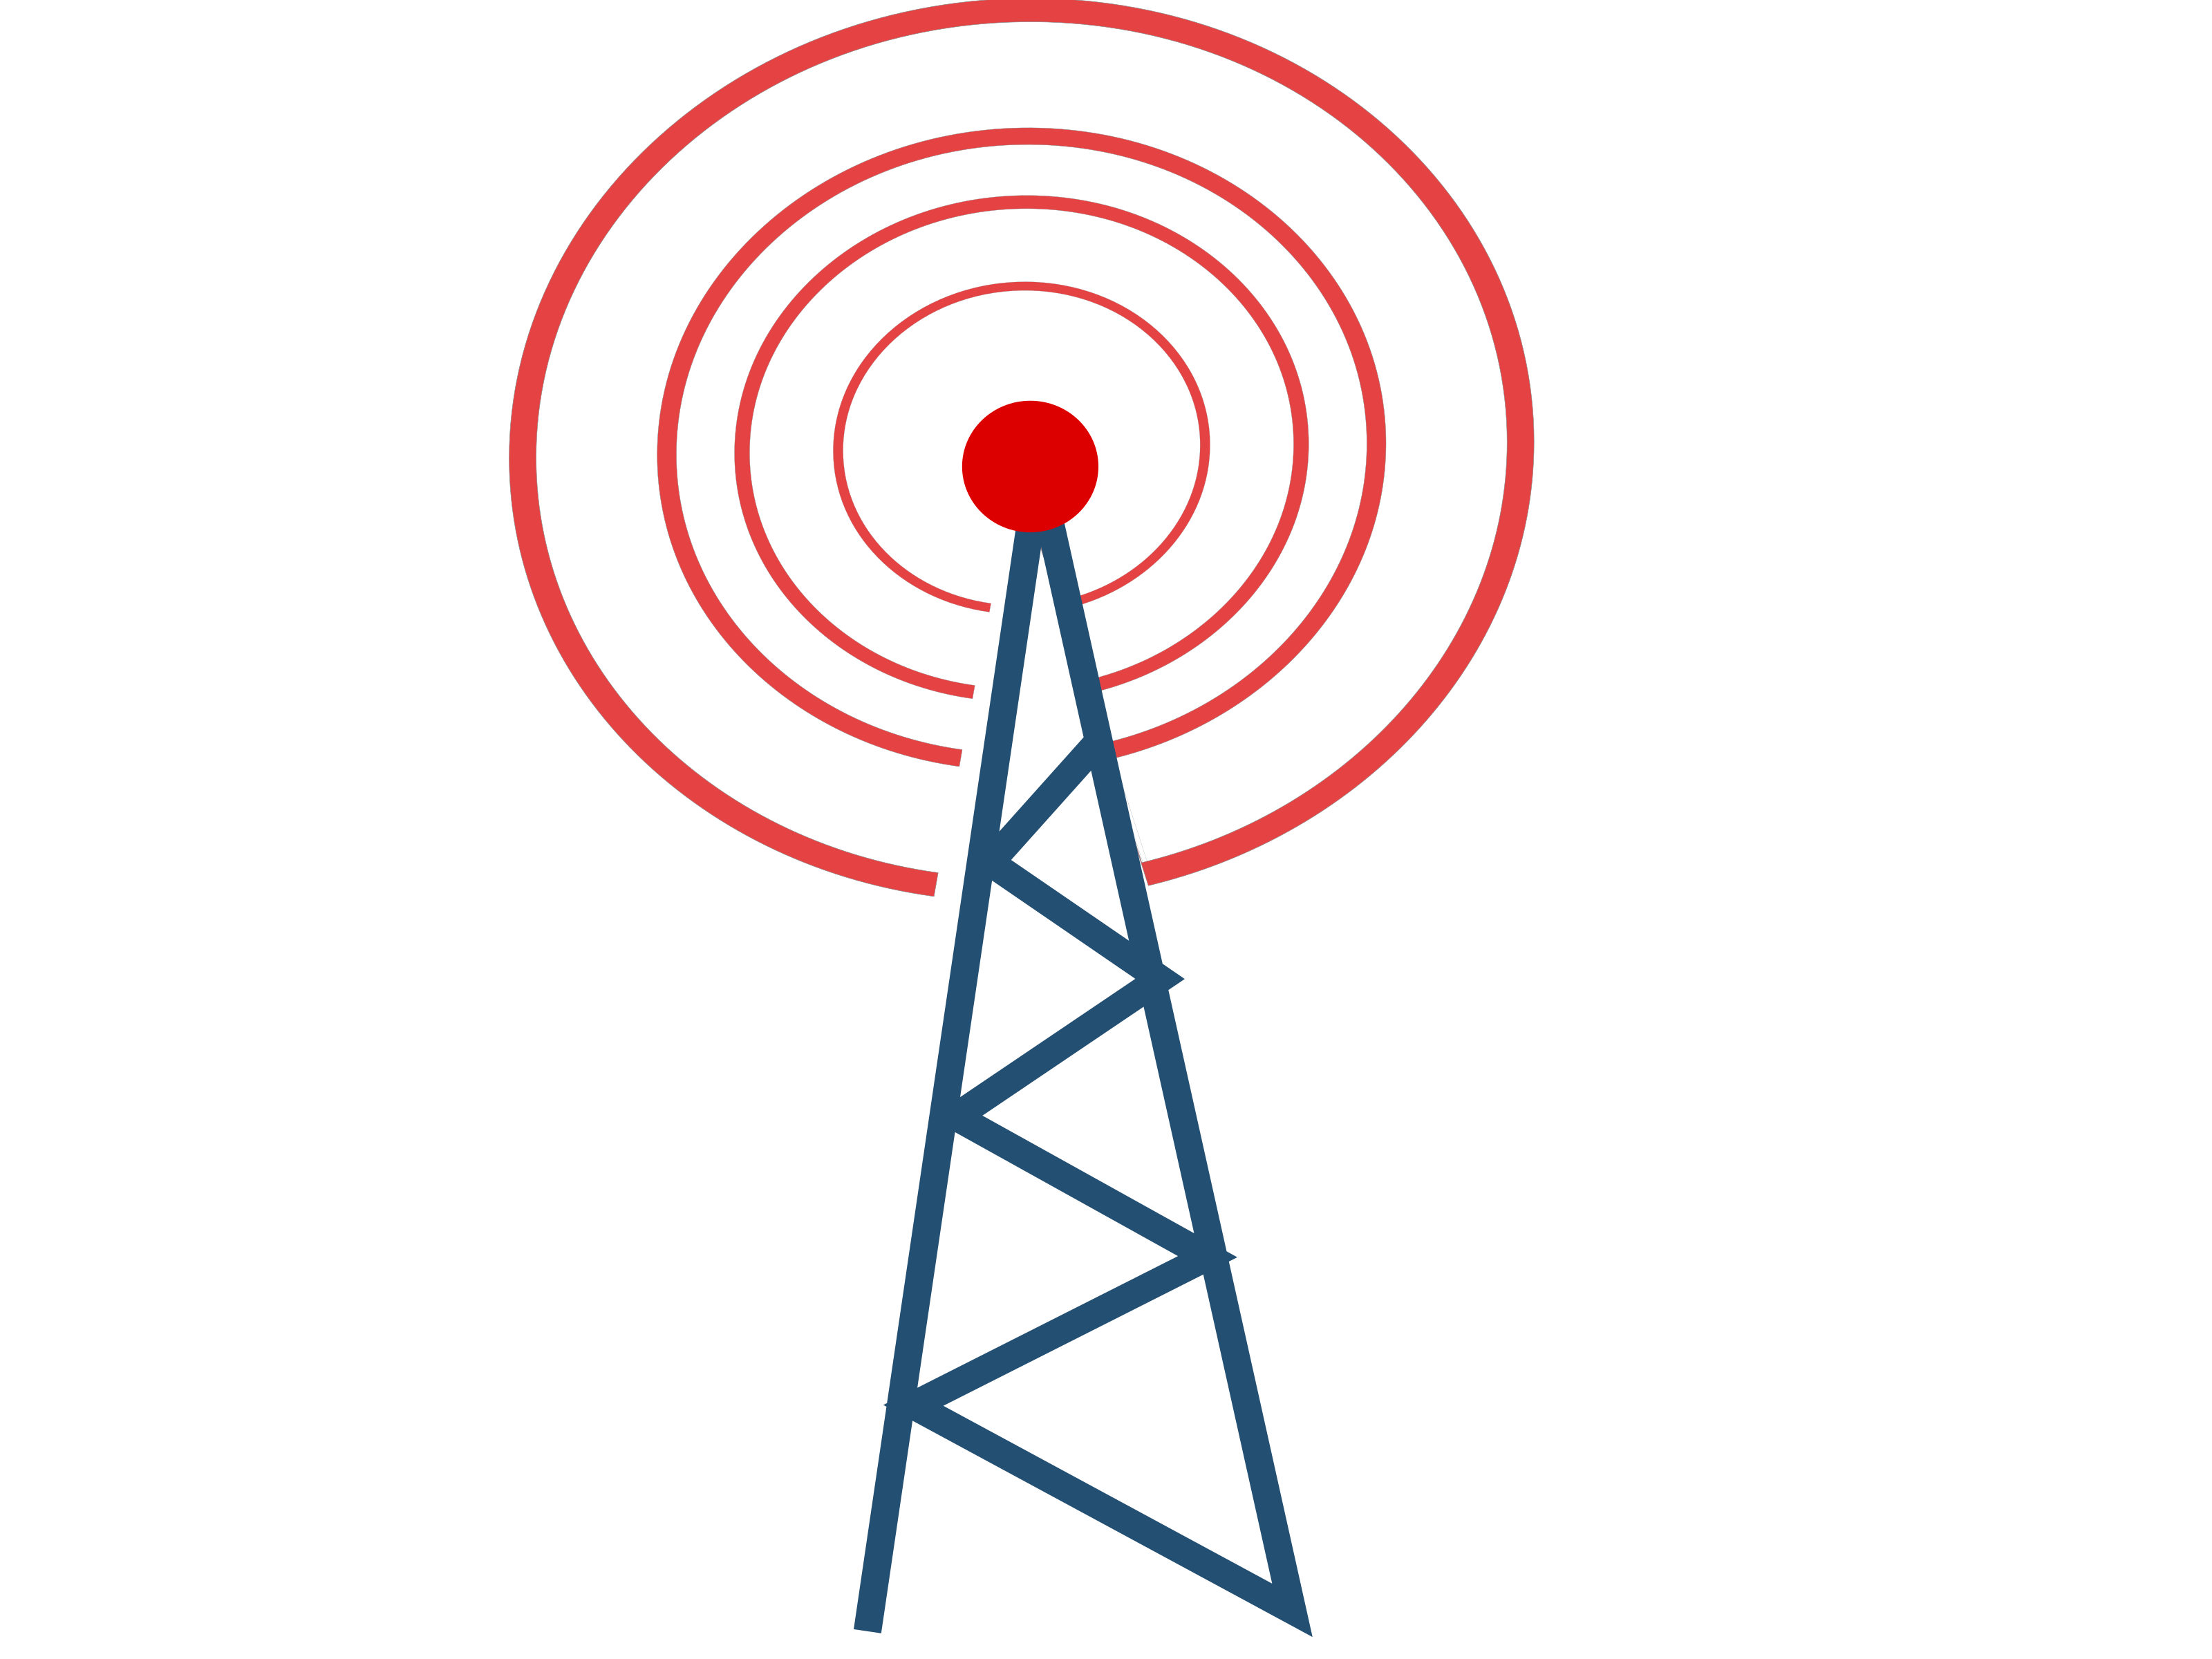 Towers clipart network tower BIG (PNG) IMAGE Clipart telecom